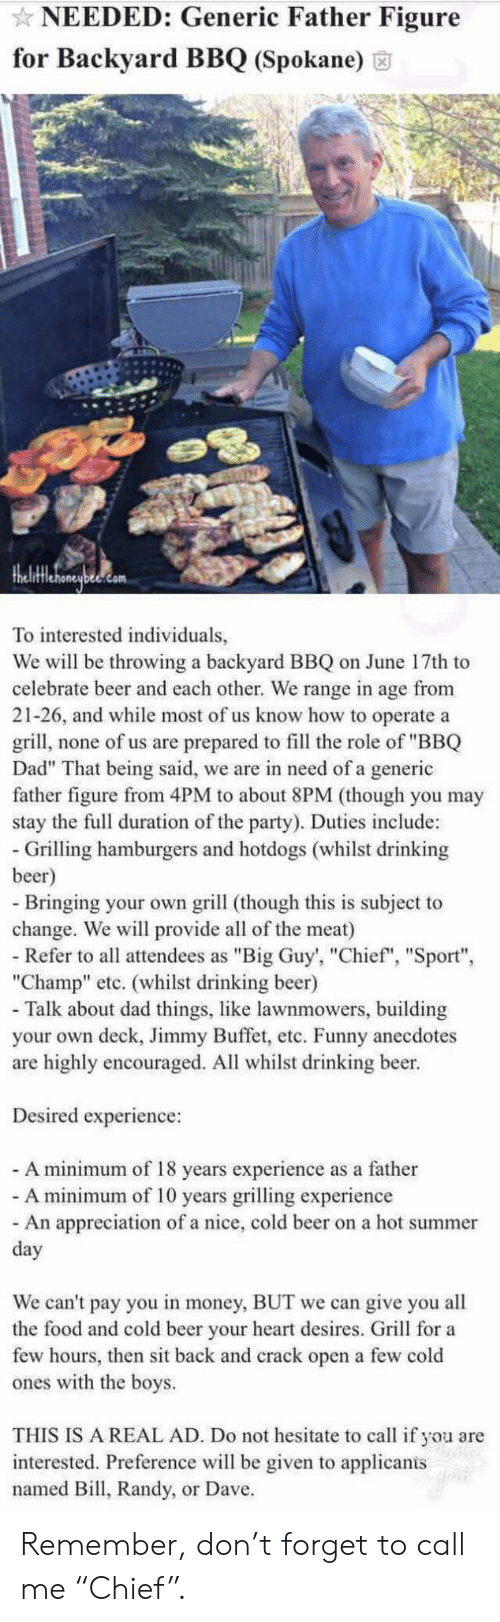 "sport: NEEDED: Generic Father Figure  for Backyard BBQ (Spokane)  To interested individuals,  We will be throwing a backyard BBQ on June 17th to  celebrate beer and each other. We range in age from  21-26, and while most of us know how to operate a  grill, none of us are prepared to fill the role of ""BBQ  Dad"" That being said, we are in need of a generic  father figure from 4PM to about 8PM (though you may  stay the full duration of the party). Duties include:  - Grilling hamburgers and hotdogs (whilst drinking  beer)  - Bringing your own grill (though this is subject to  change. We will provide all of the meat)  - Refer to all attendees as ""Big Guy', ""Chief"", ""Sport""  ""Champ"" etc. (whilst drinking beer)  - Talk about dad things, like lawnmowers, building  your own deck, Jimmy Buffet, etc. Funny anecdotes  are highly encouraged. All whilst drinking beer.  Desired experience:  - A minimum of 18 years experience as a father  - A minimum of 10 years grilling experience  - An appreciation of a nice, cold beer on a hot summer  day  We can't pay you in money, BUT we can give you all  the food and cold beer your heart desires. Grill for a  few hours, then sit back and crack open a few cold  ones with the boys.  THIS IS A REAL AD. Do not hesitate to call if you are  interested. Preference will be given to applicanis  named Bill, Randy, or Dave. Remember, don't forget to call me ""Chief""."